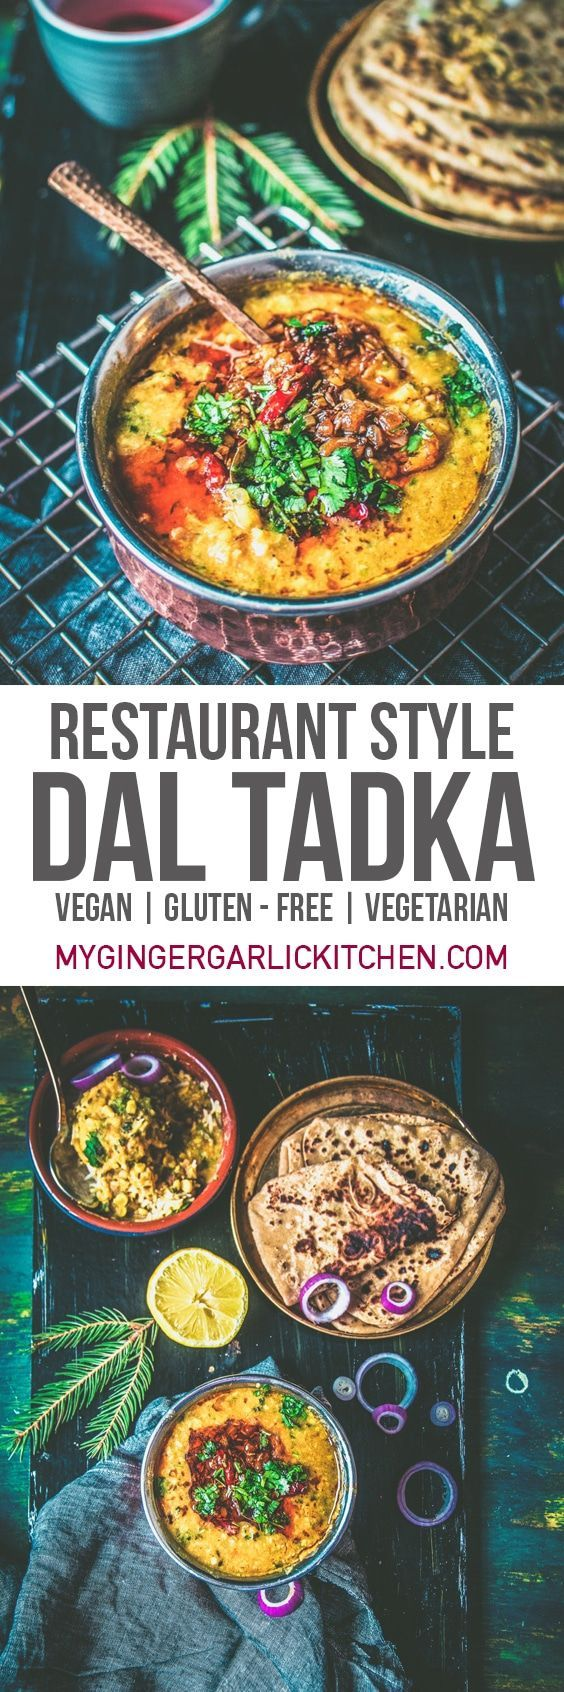 Restaurant Style Tadka Dal or Dal Tadka is one of the most basic yet one of the most popular dal recipes served in any Indian Restaurant. This #vegan, #gluten-free, and #vegetarian dal is a creamy concoction of two lentils boiled until they are rich and creamy and then tempered twice with brilliant spices and butter/ghee. From: mygingergarlickitchen.com/ #Dal #lentils #Protein #Spicy #powerfood #healthy #videotutorial #Indiancuisine #tadkadal #dalfry #Tasty #indianvegetarianrecipes